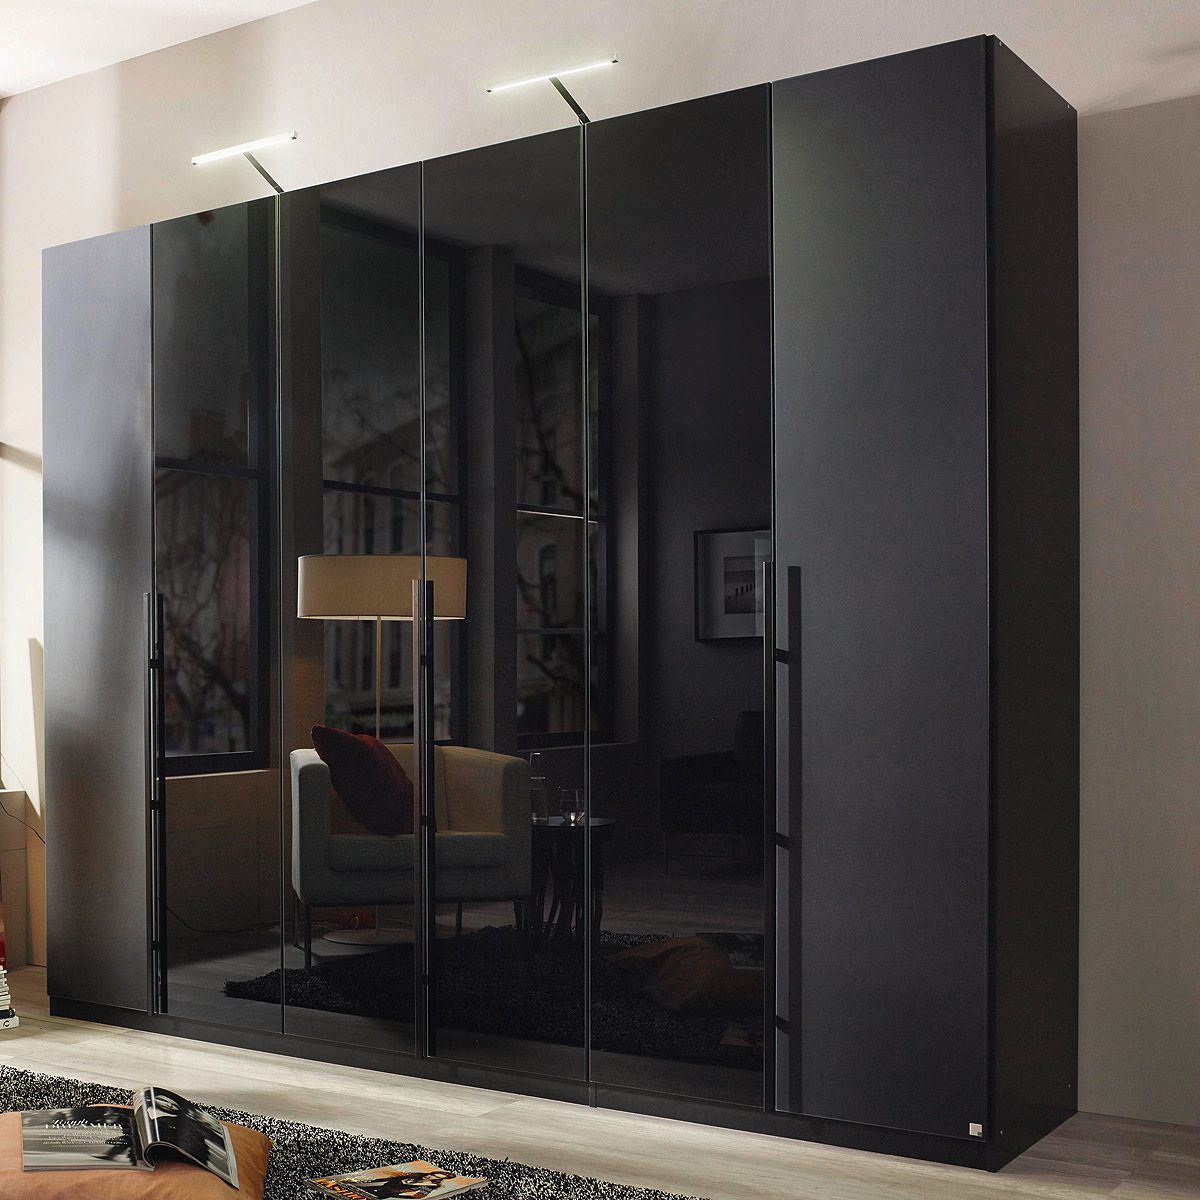 kleiderschrank bayamo schrank schlafzimmer glas matt. Black Bedroom Furniture Sets. Home Design Ideas